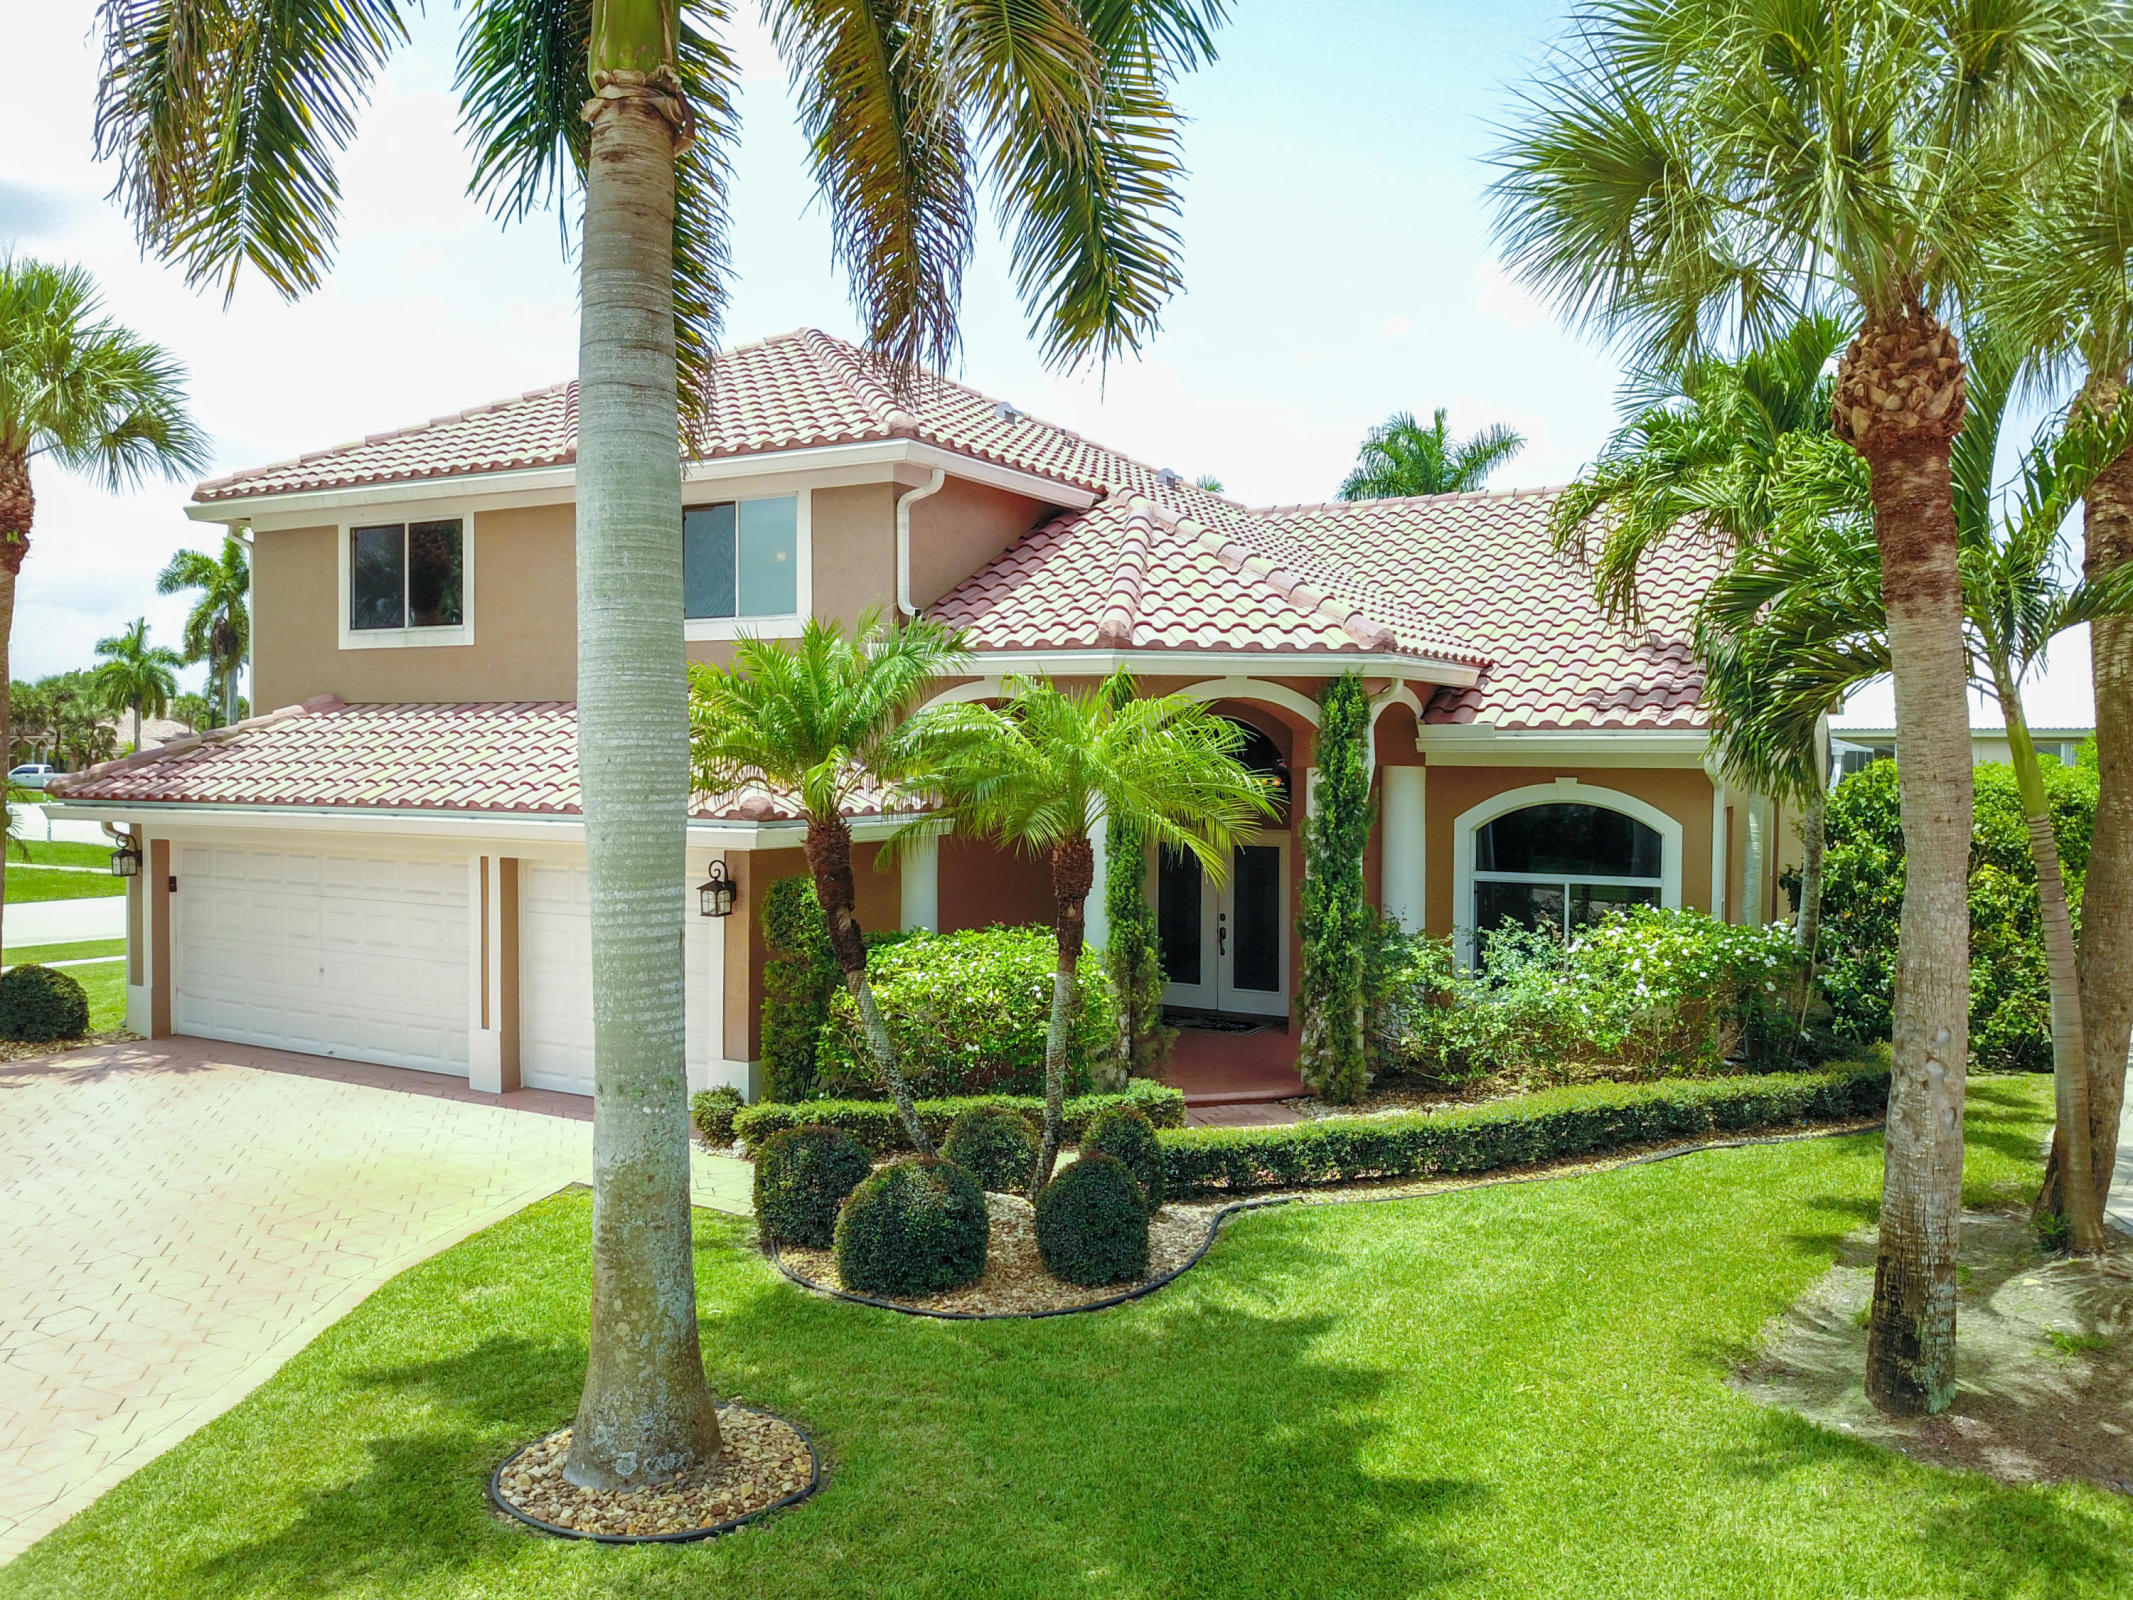 Home for sale in Boca Isles North Boca Raton Florida